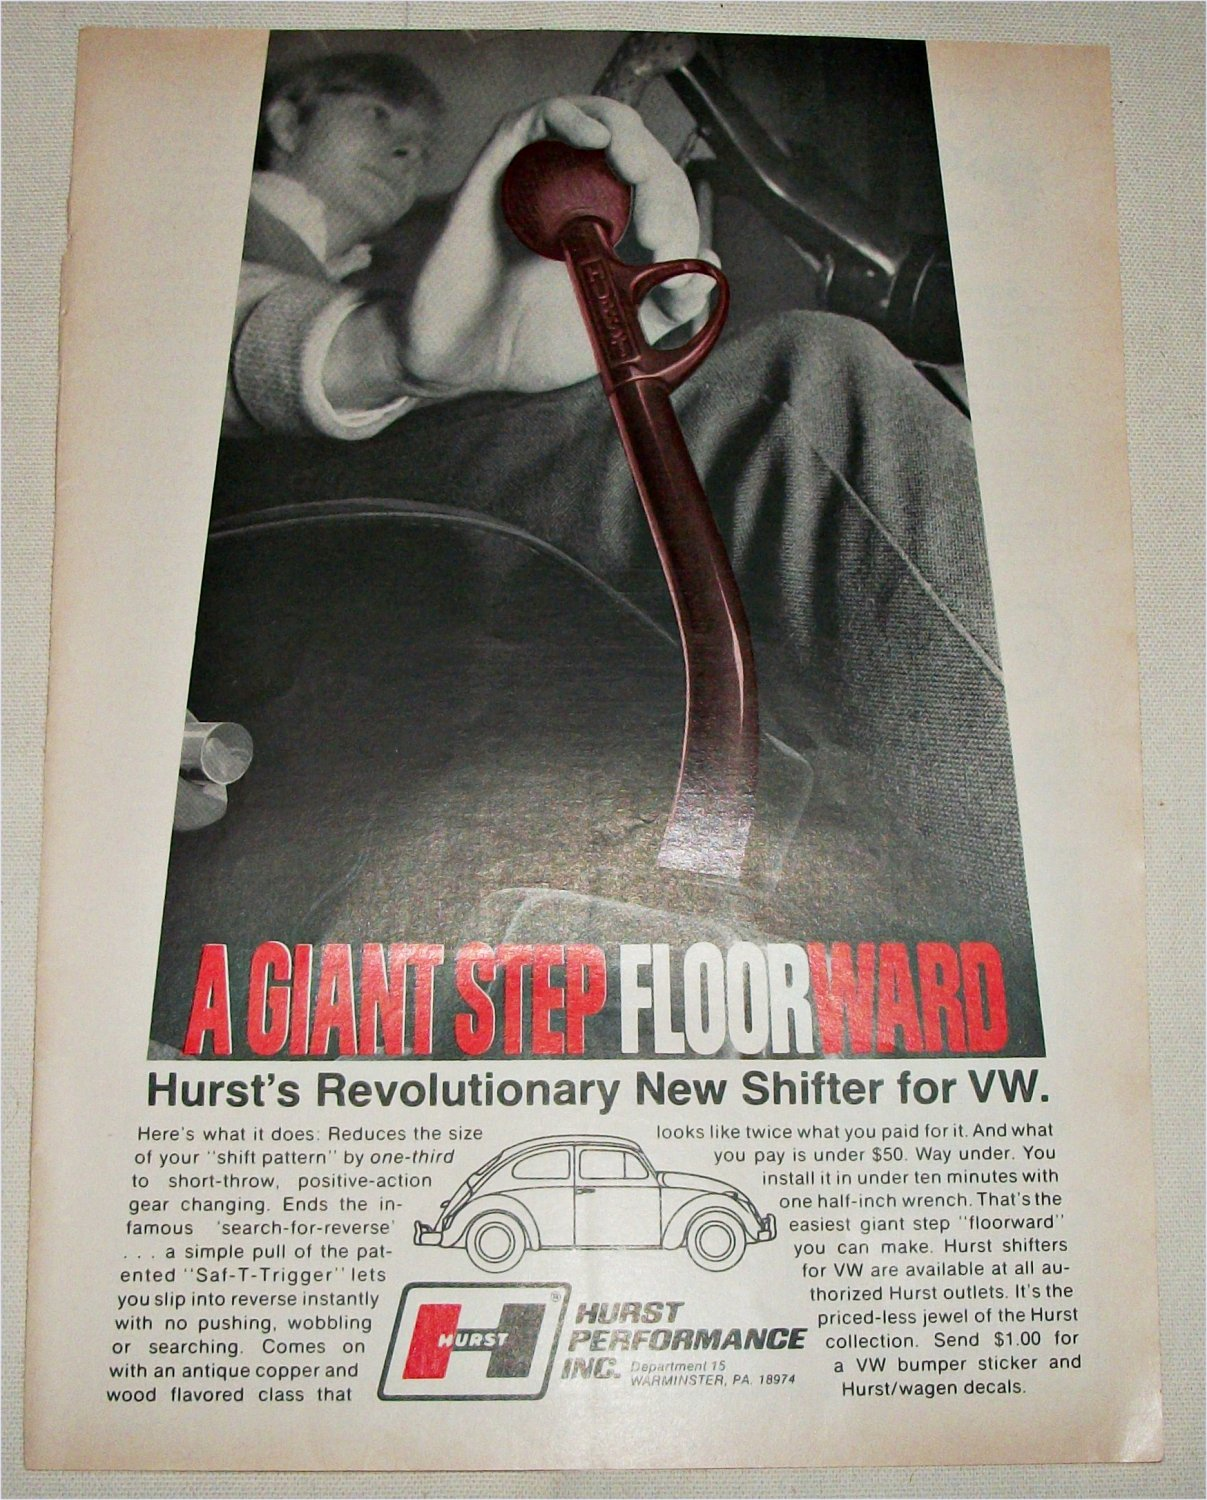 1970 Hurst Floorward VW Shifter ad